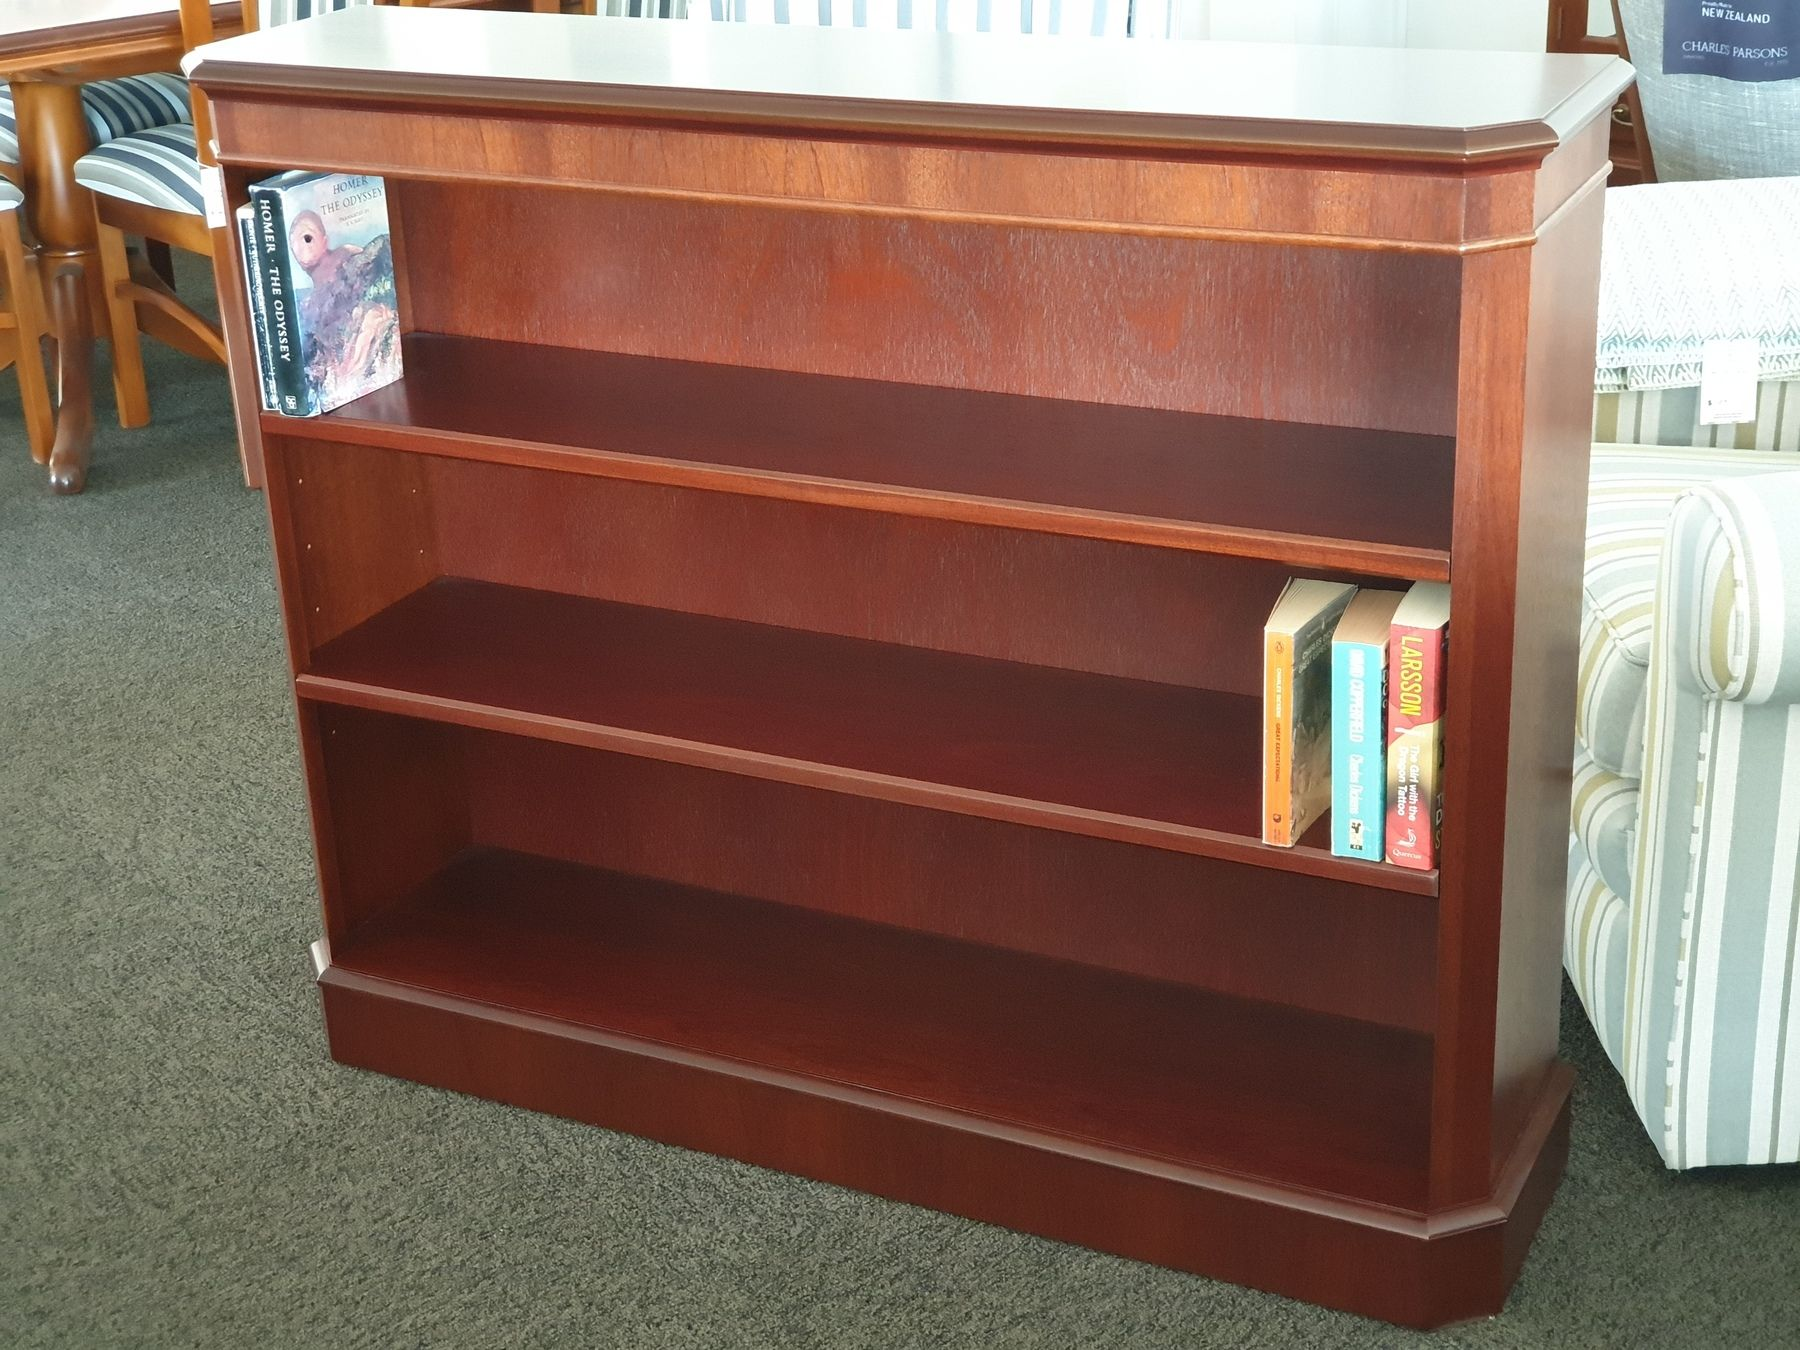 Fitzroy Mahogany Medium Bookshelf